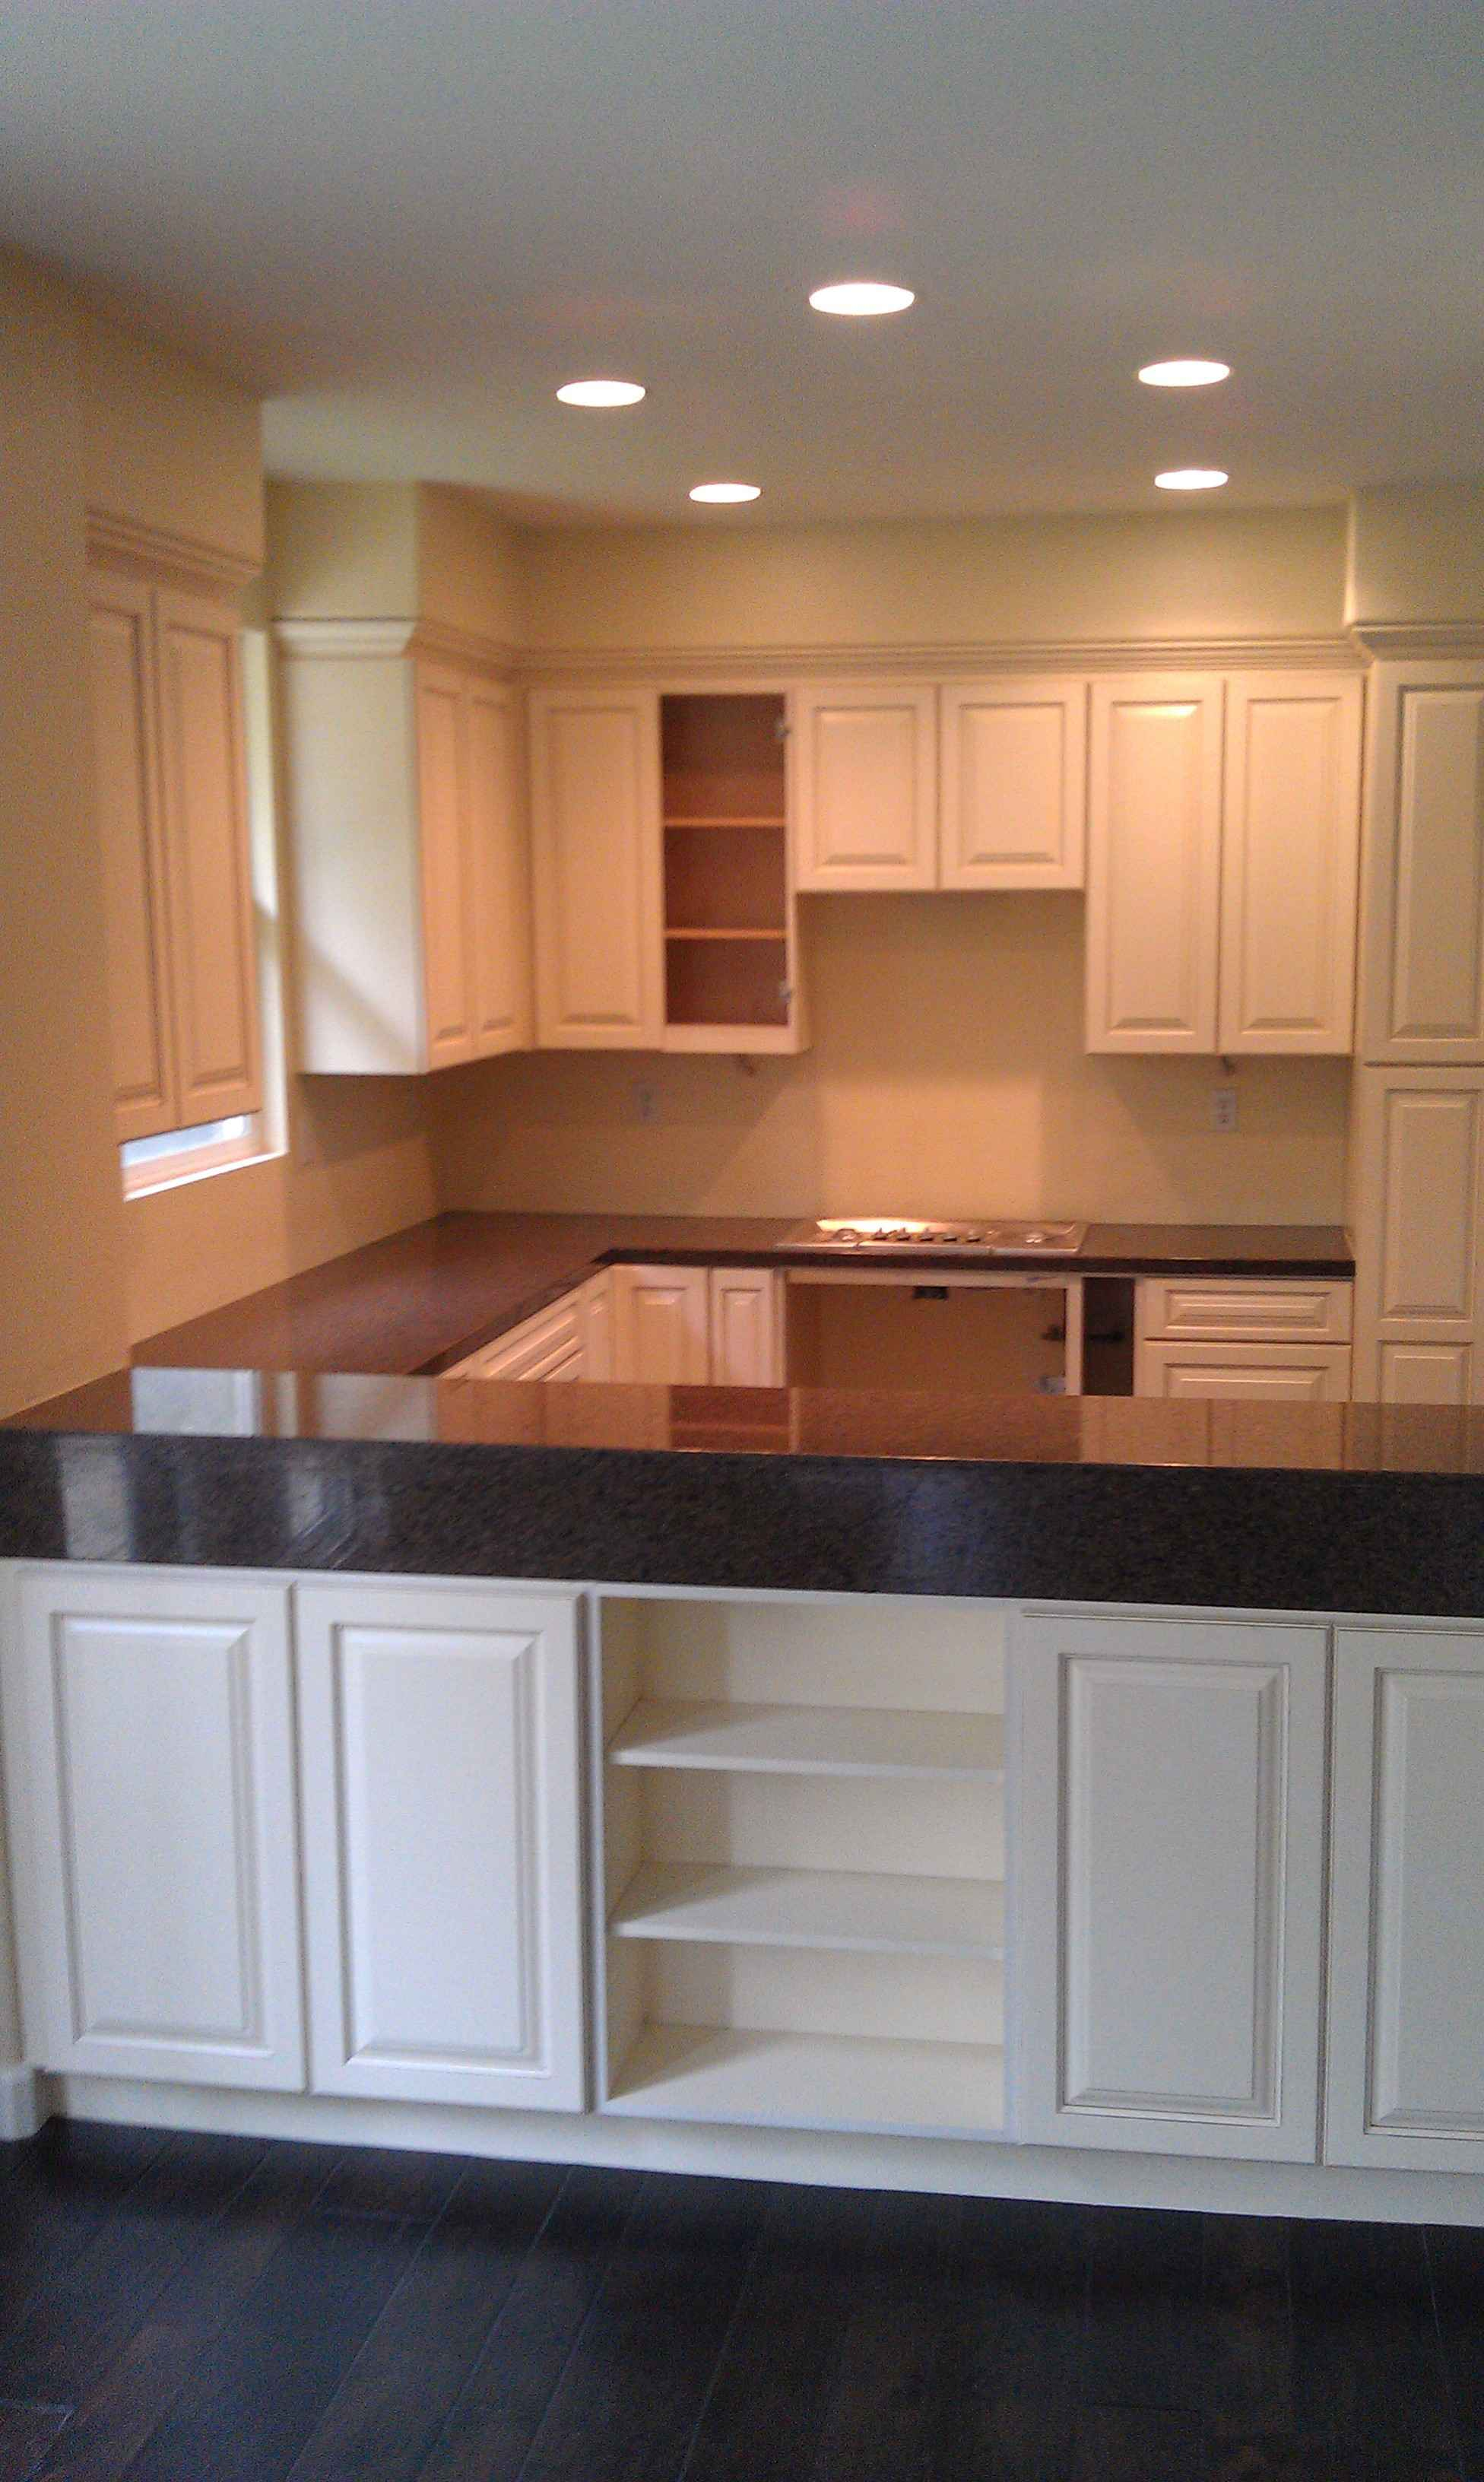 Tice Kitchen  Epic Interiors  Construction Inc